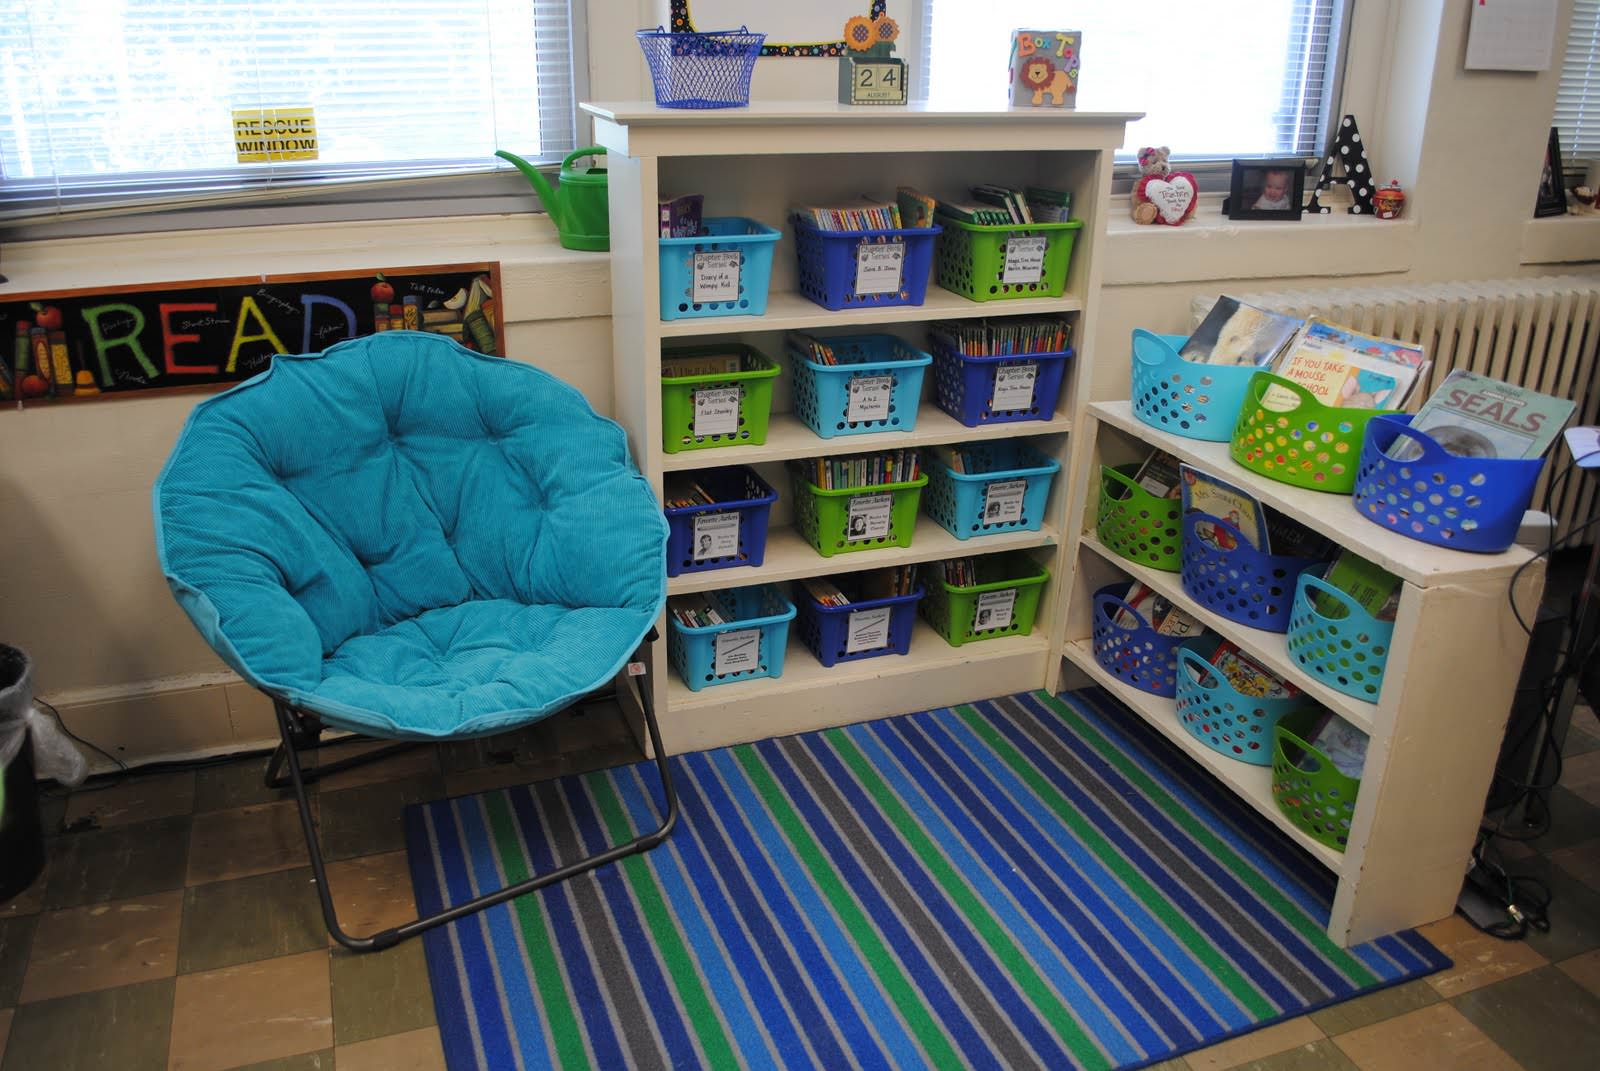 classroom, organized classroom, organized books, children's books, home organization, blue and green room, kids toys, kids organization, DIY organizing,